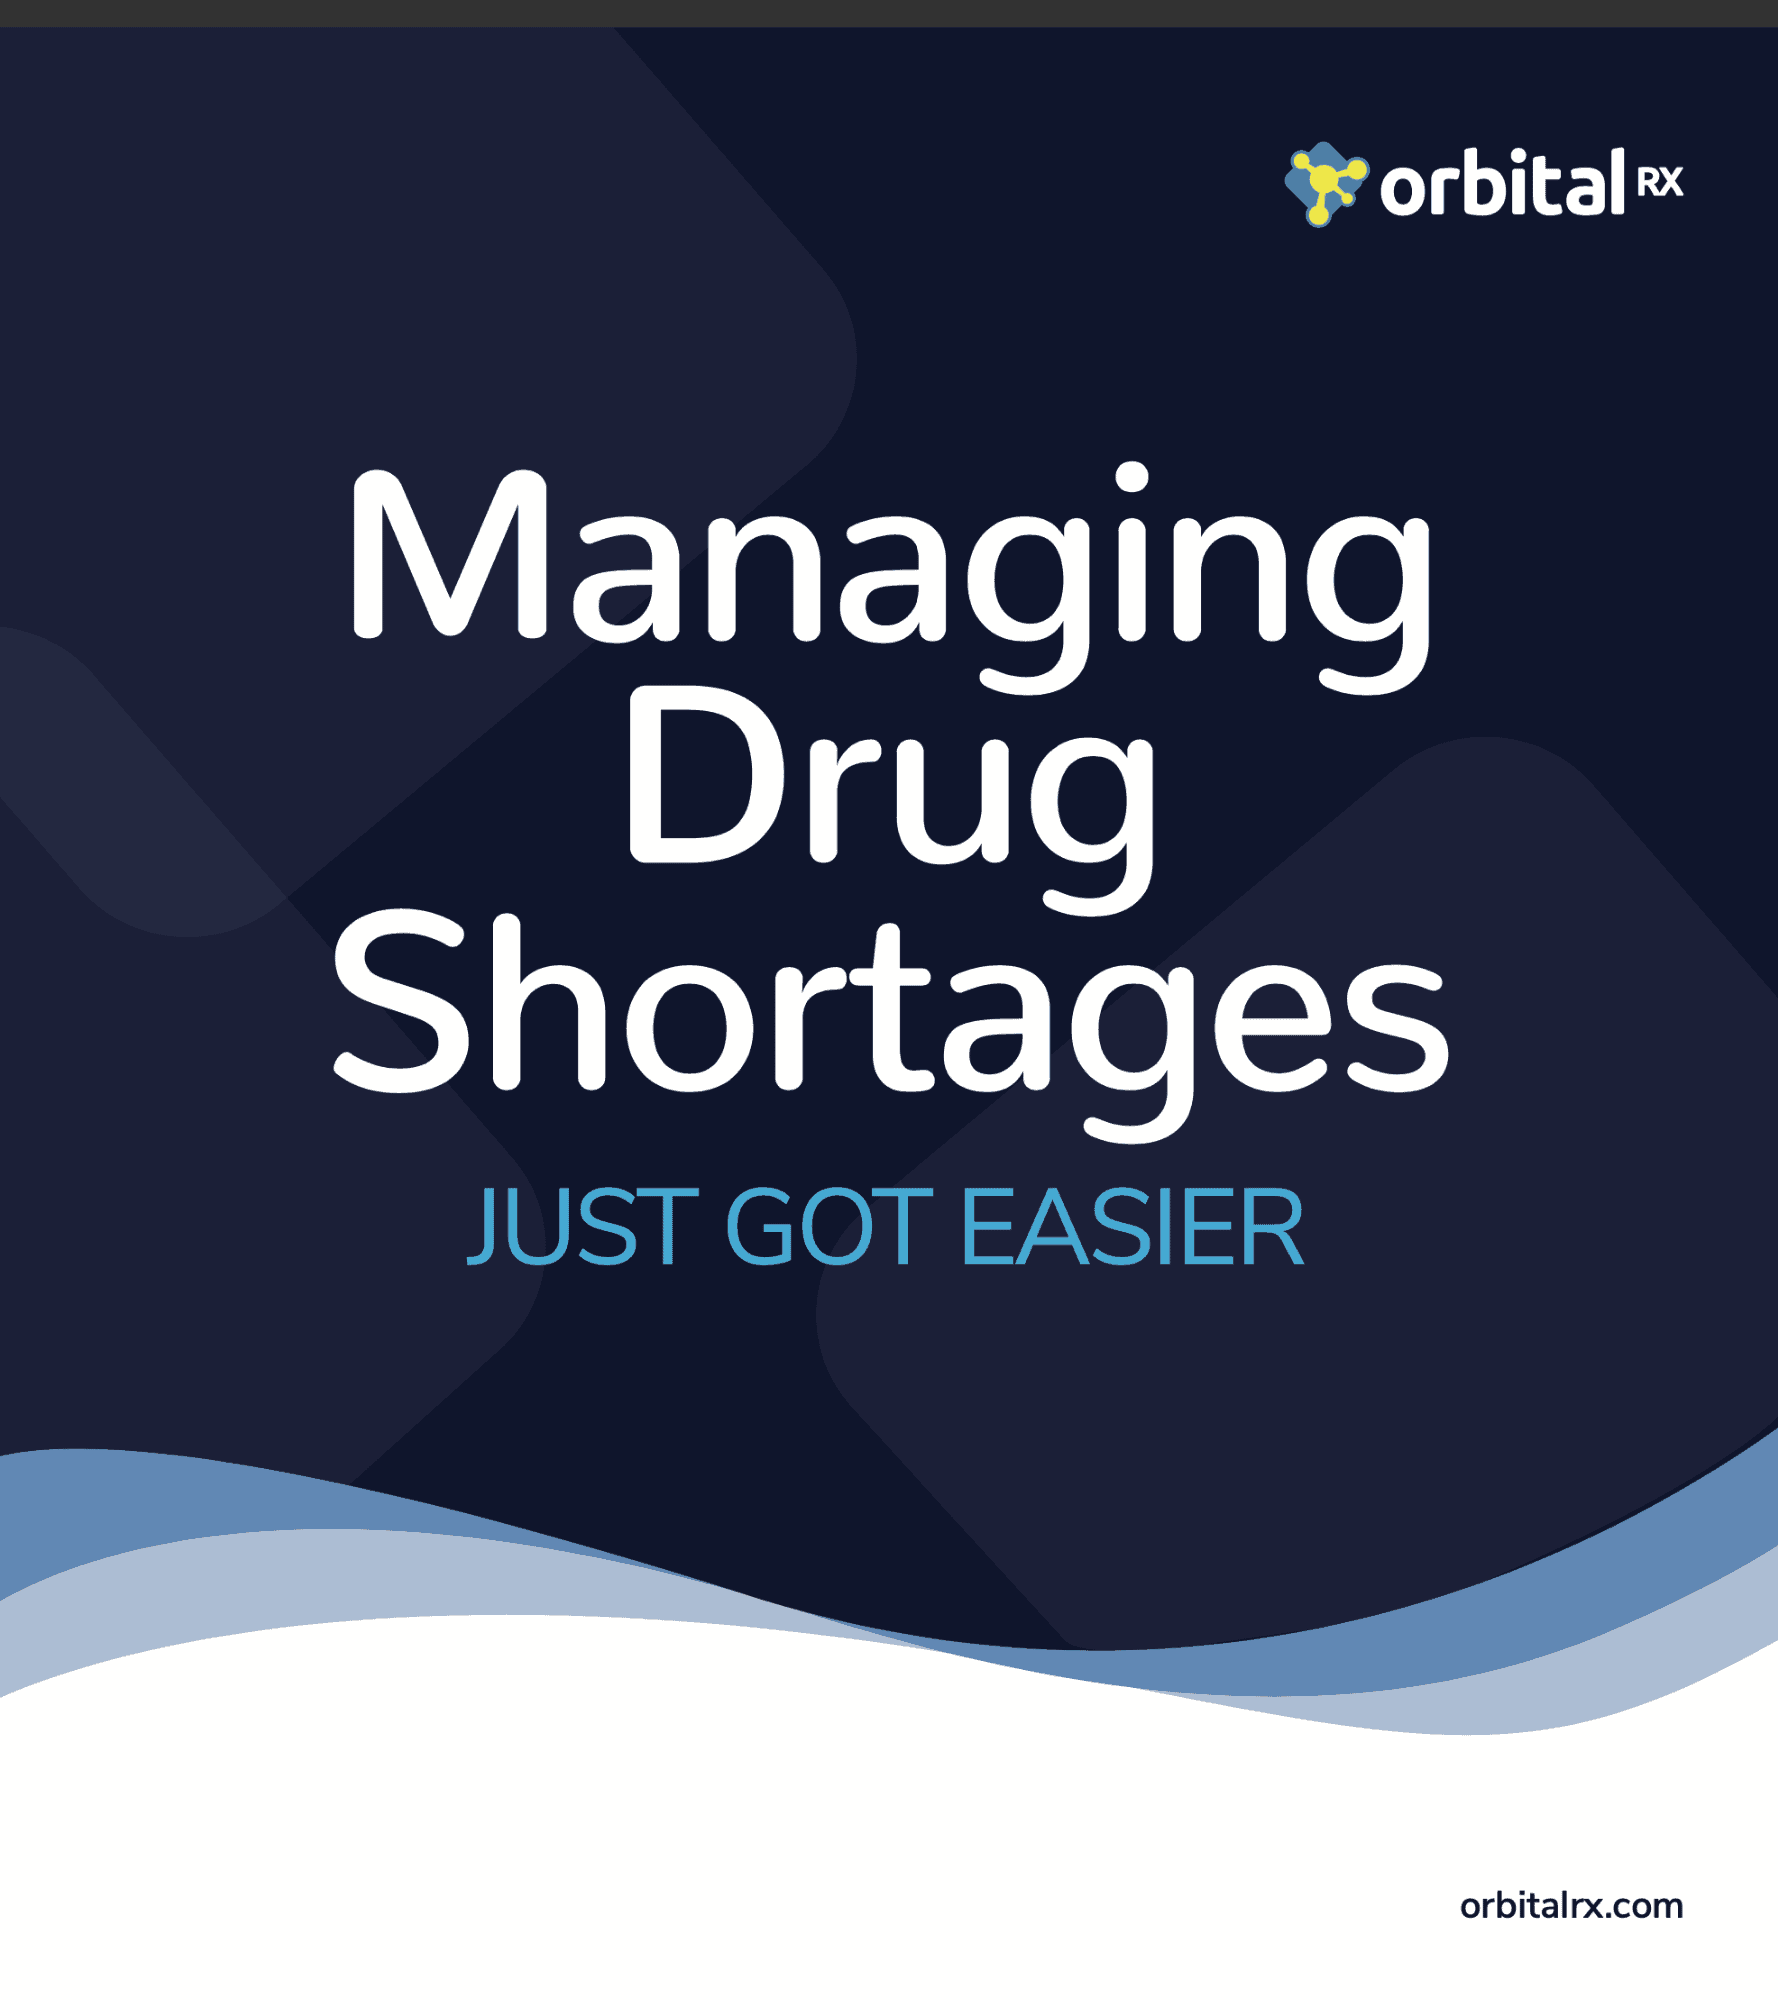 Managing Drug Shortages with OrbitalRX